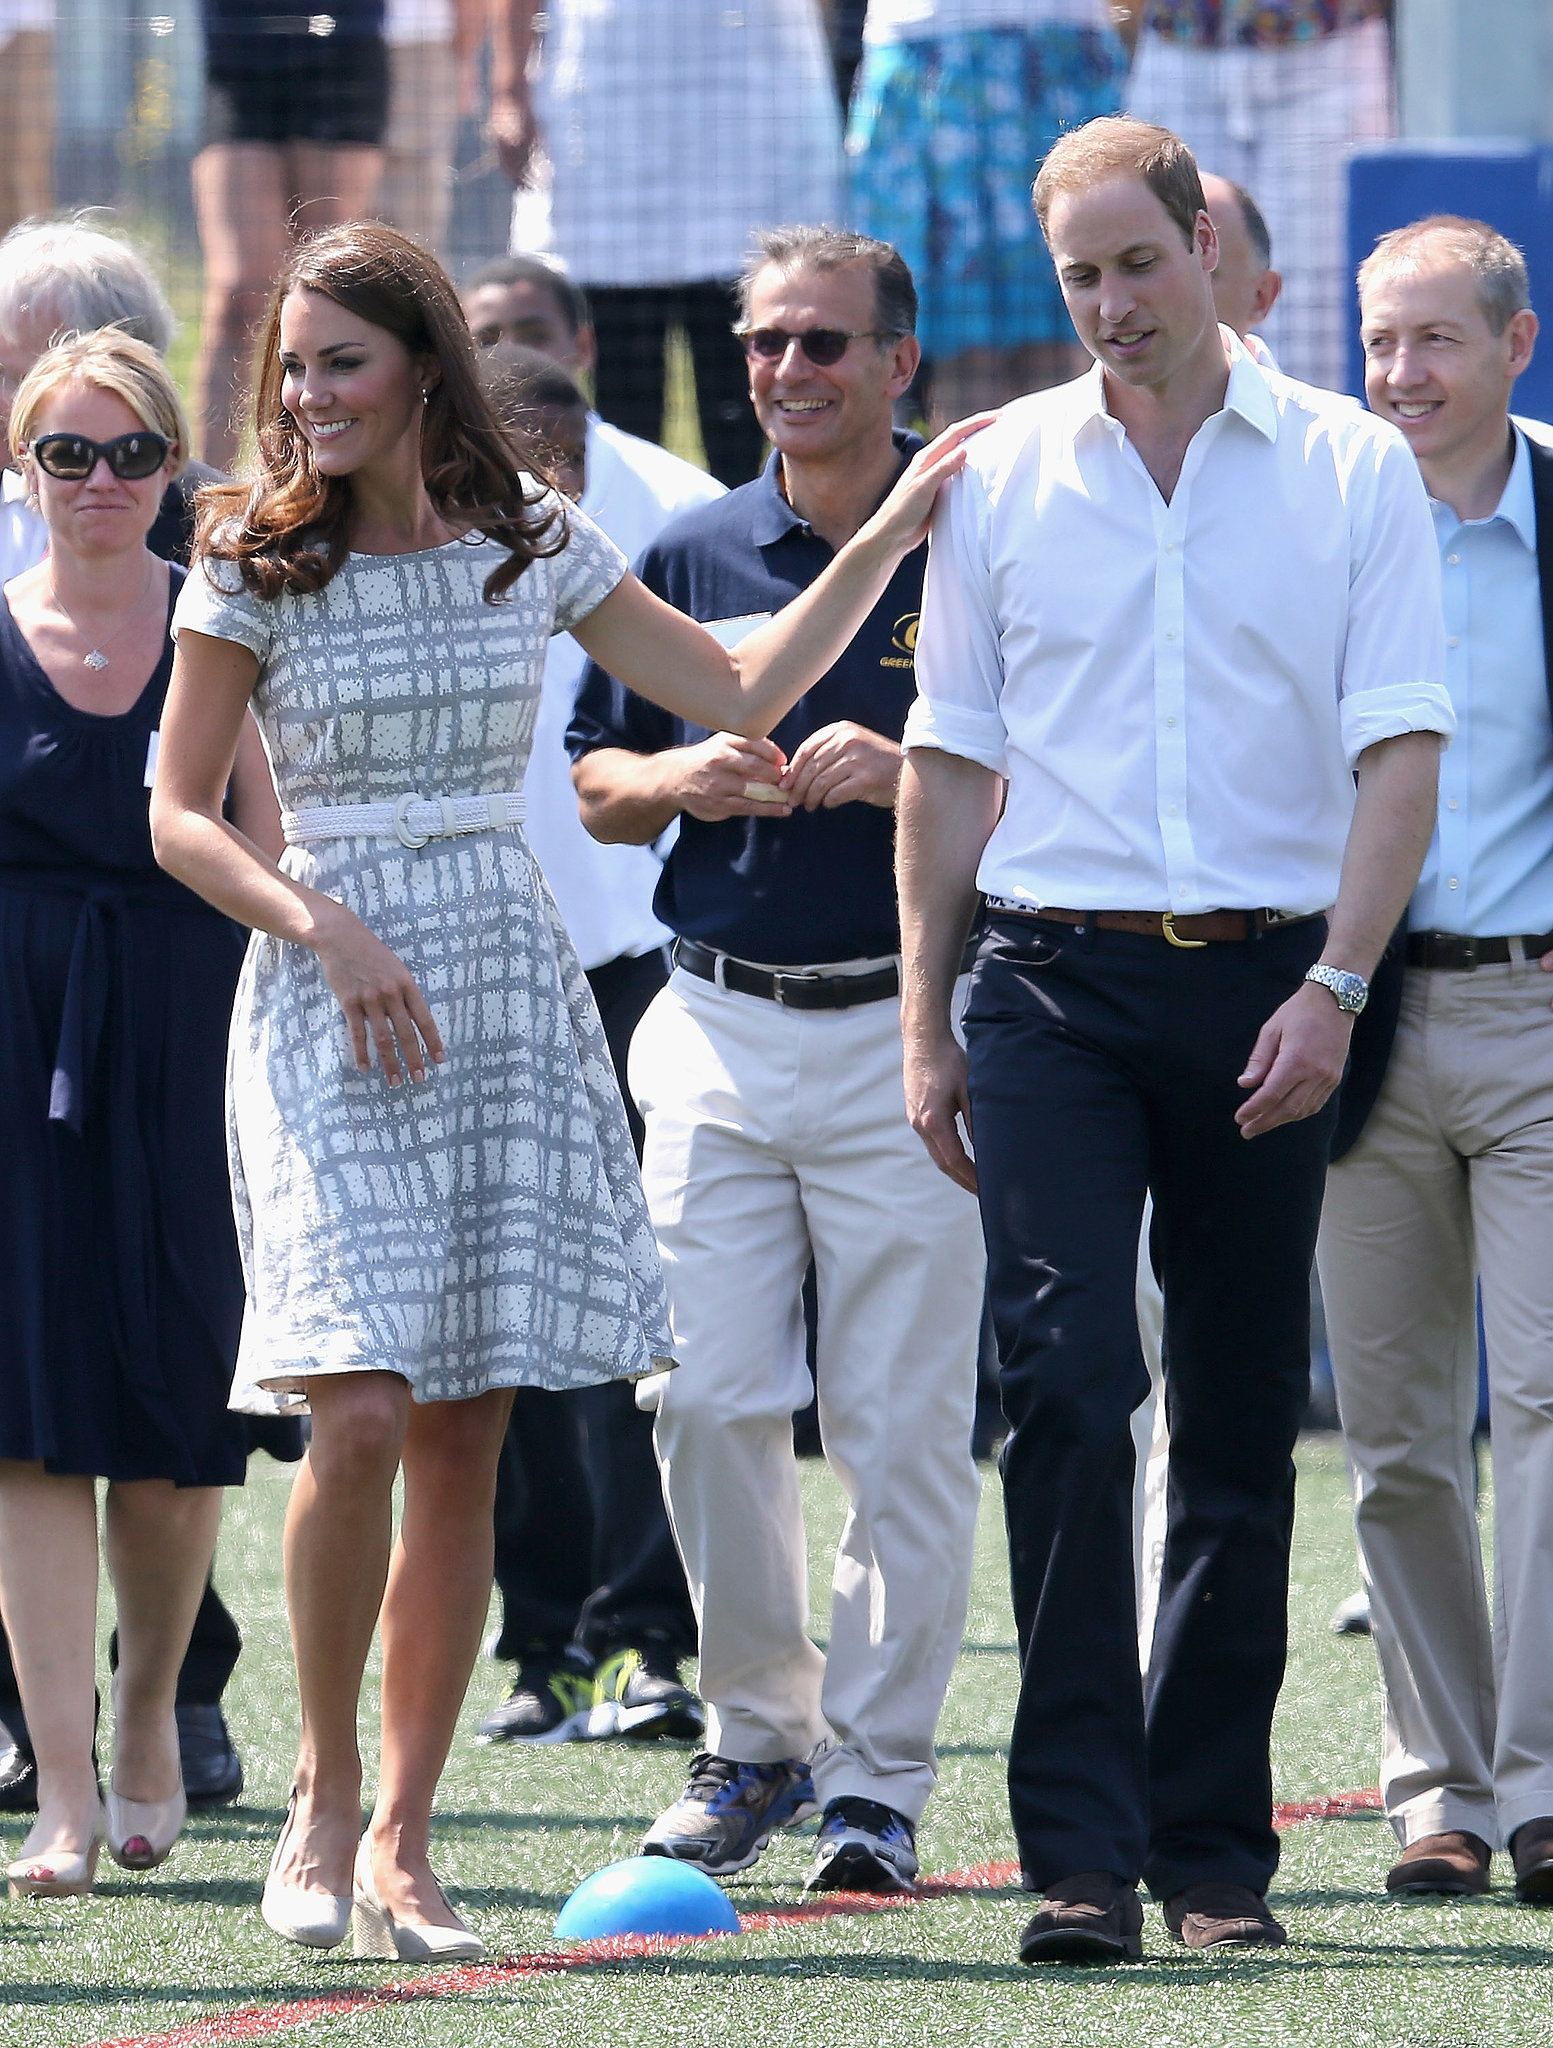 Kate Middleton put a hand on Prince William's shoulder while they visited Bacon's College in London in July 2012.